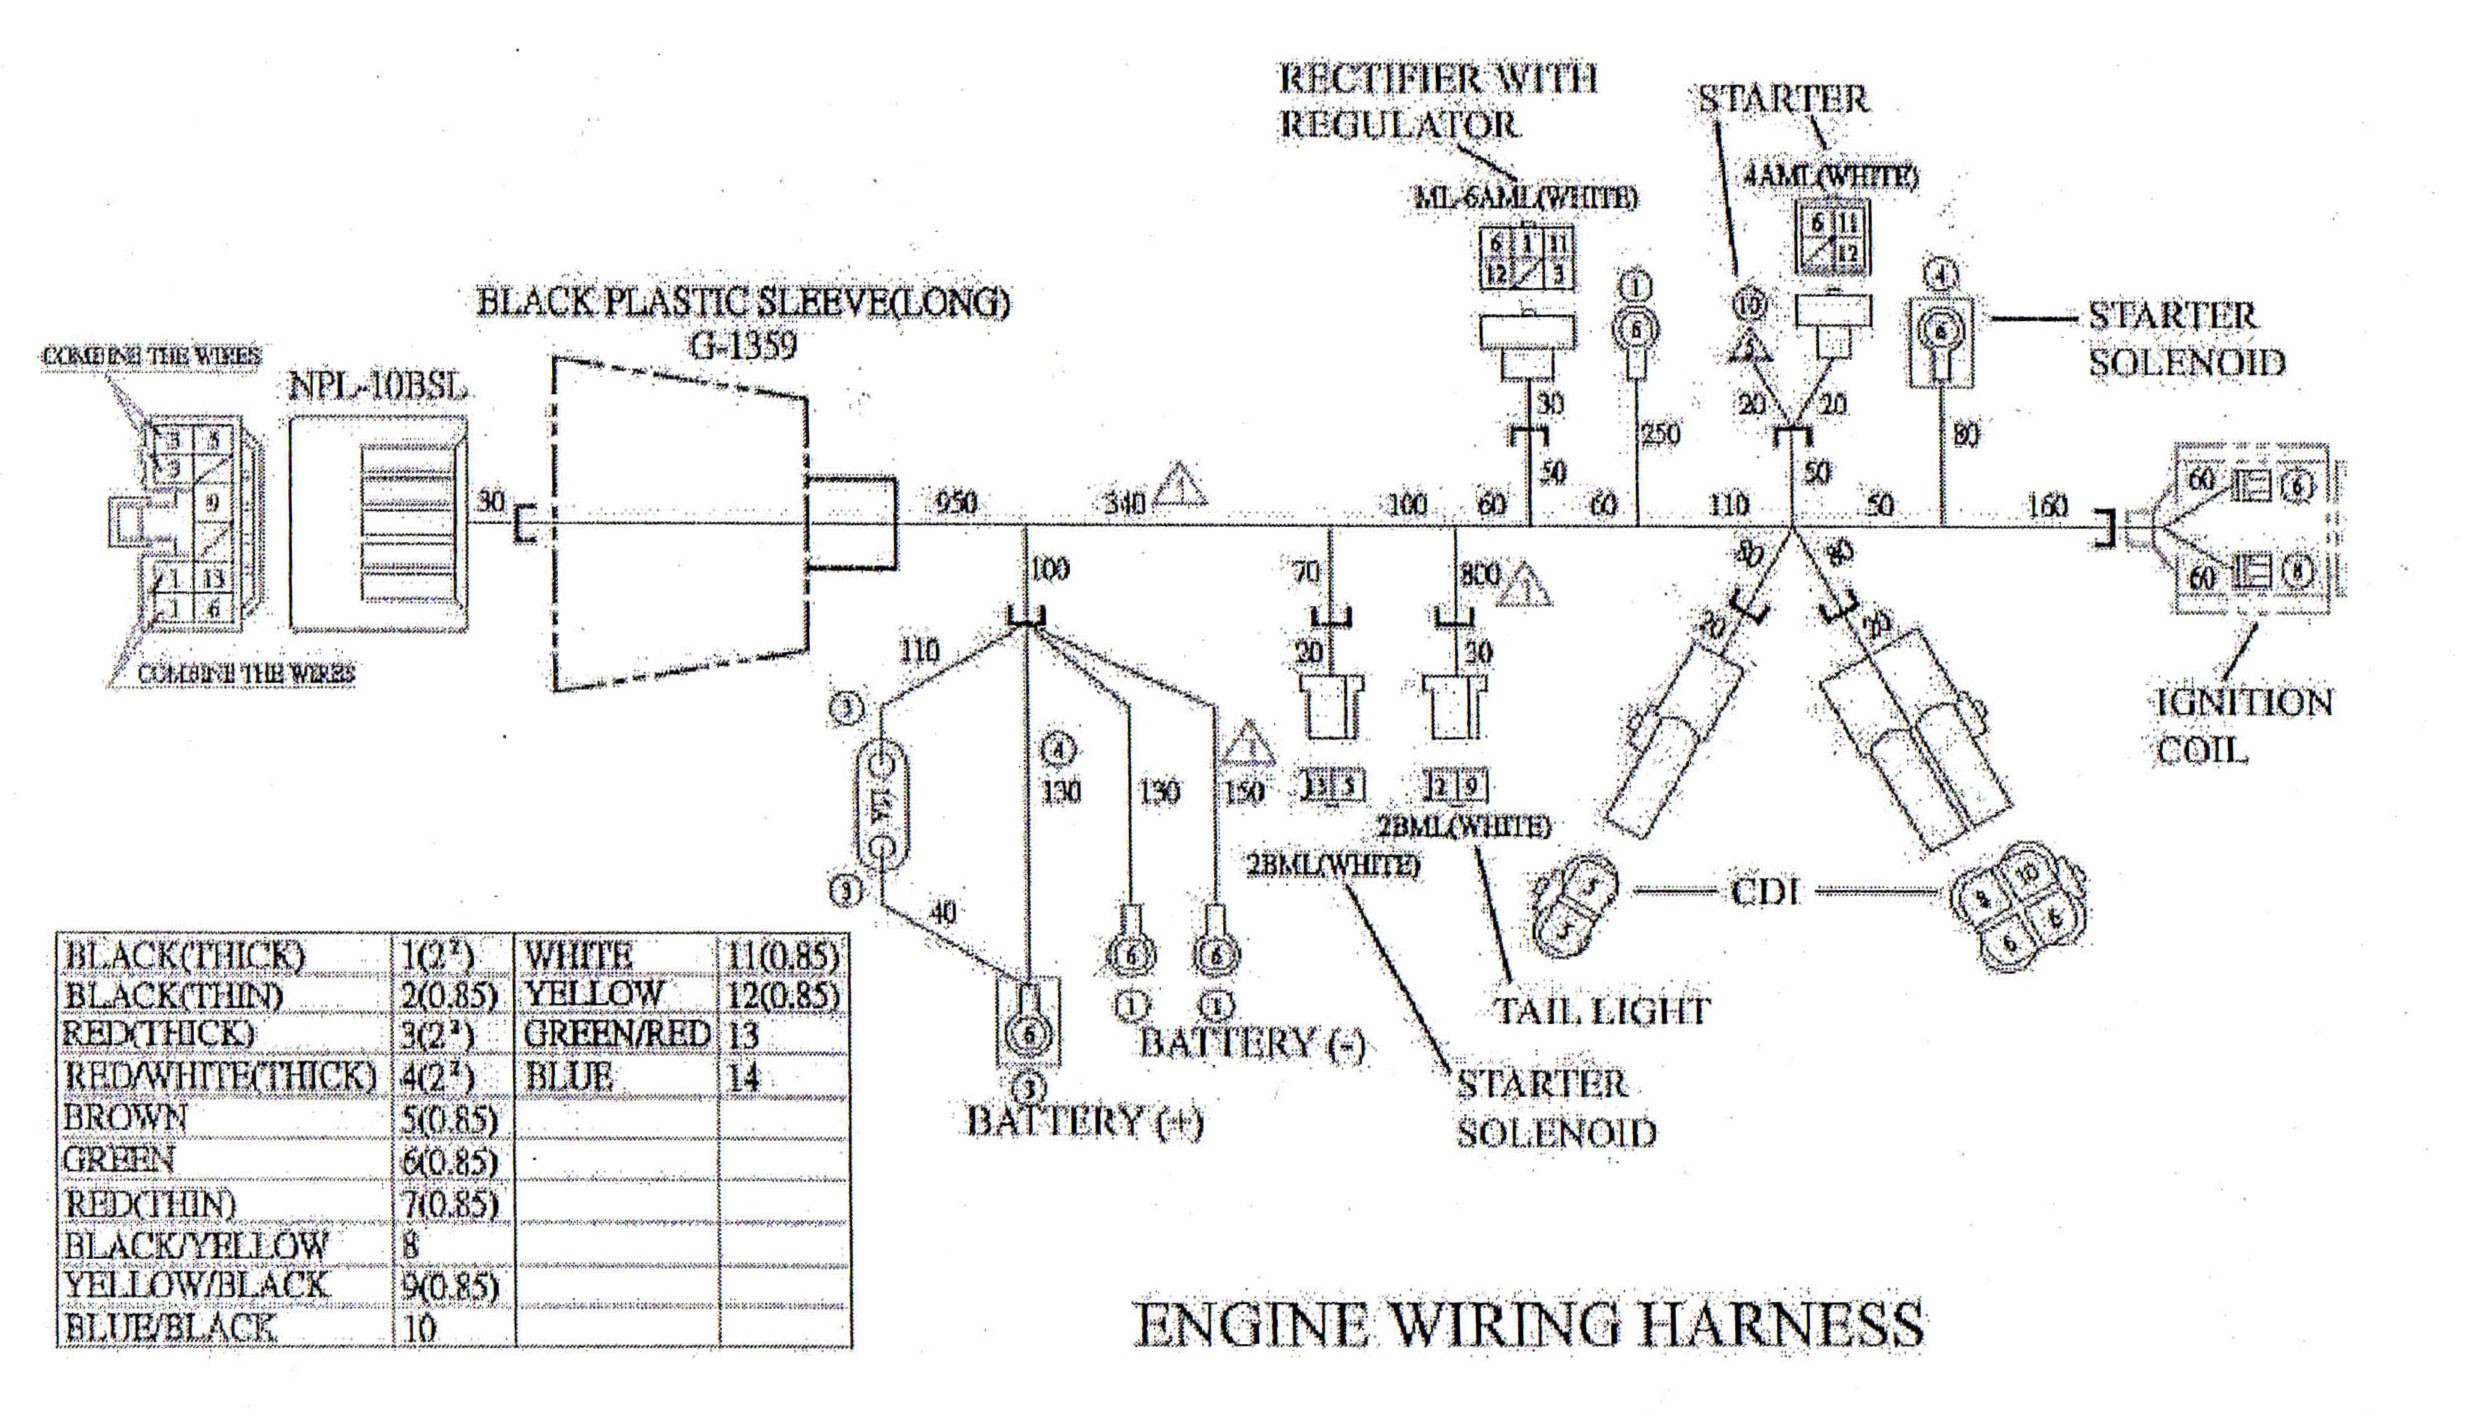 Gy6 150cc Engine Diagram Wiring Diagram for Tao Tao 150cc ... on